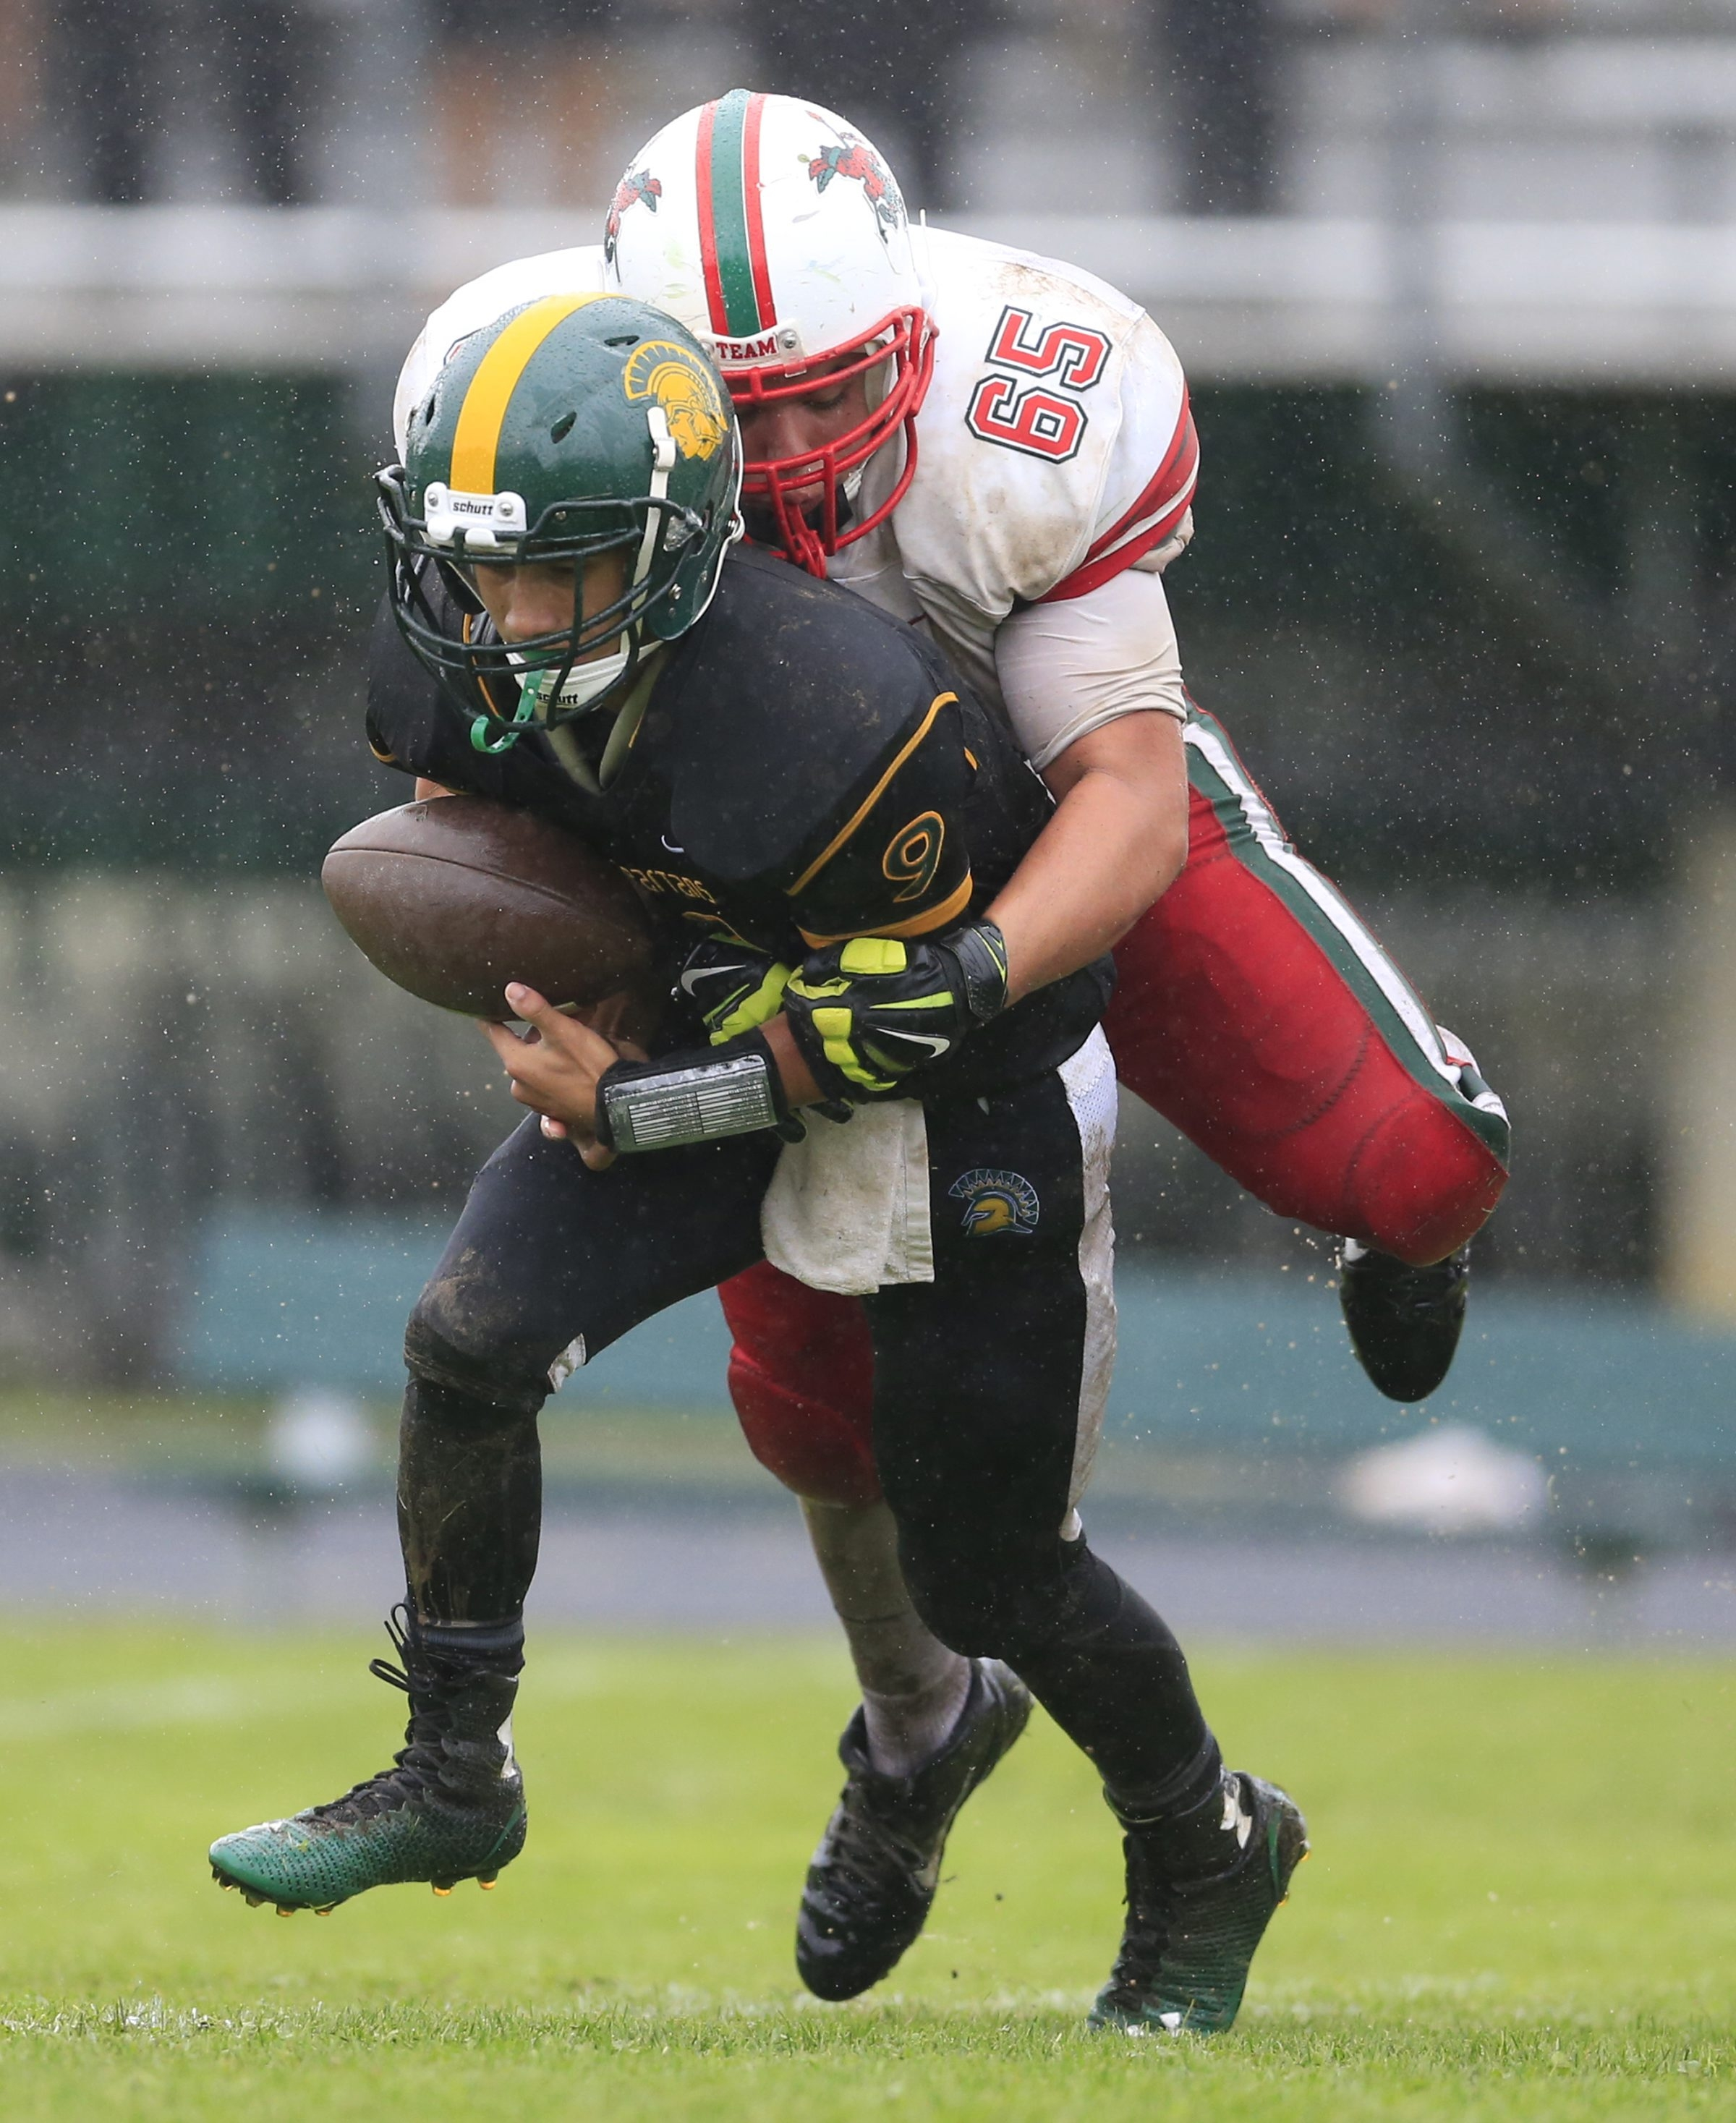 Williamsville North quarterback Jose Padilla is sacked by Jamestown's Jeremy Bush during the Red Raiders' victory in the rain Saturday.